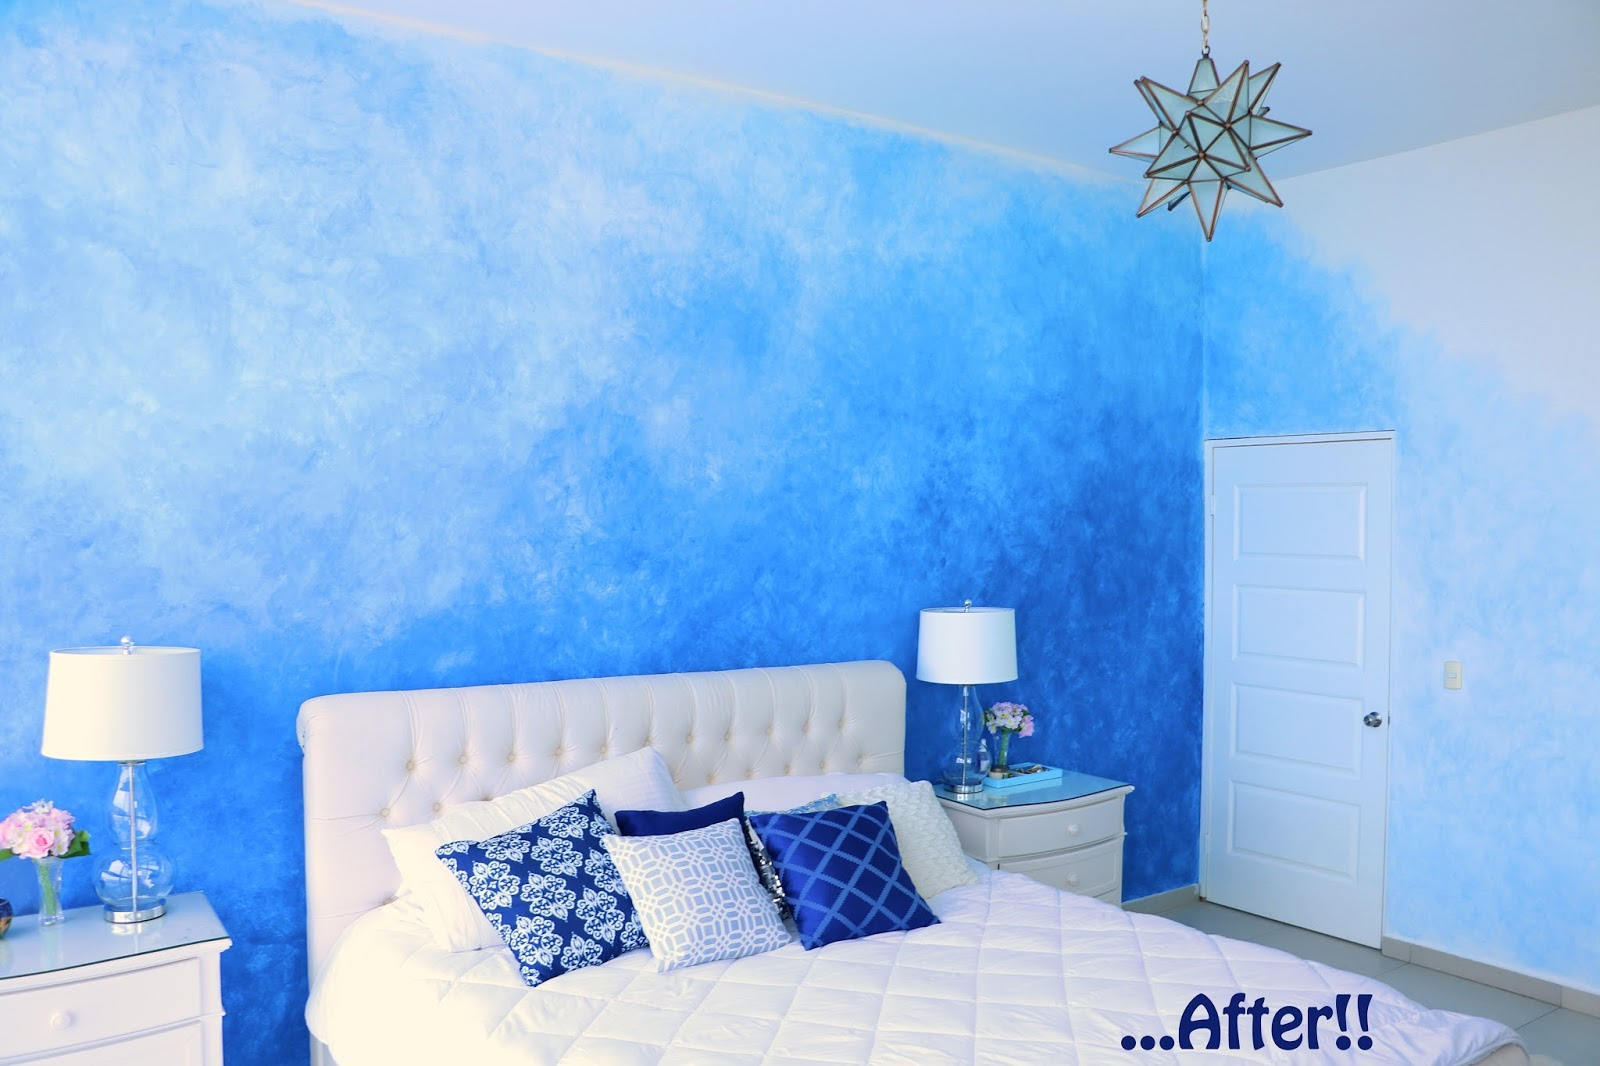 Click through to see the full makeover of this master bedroom